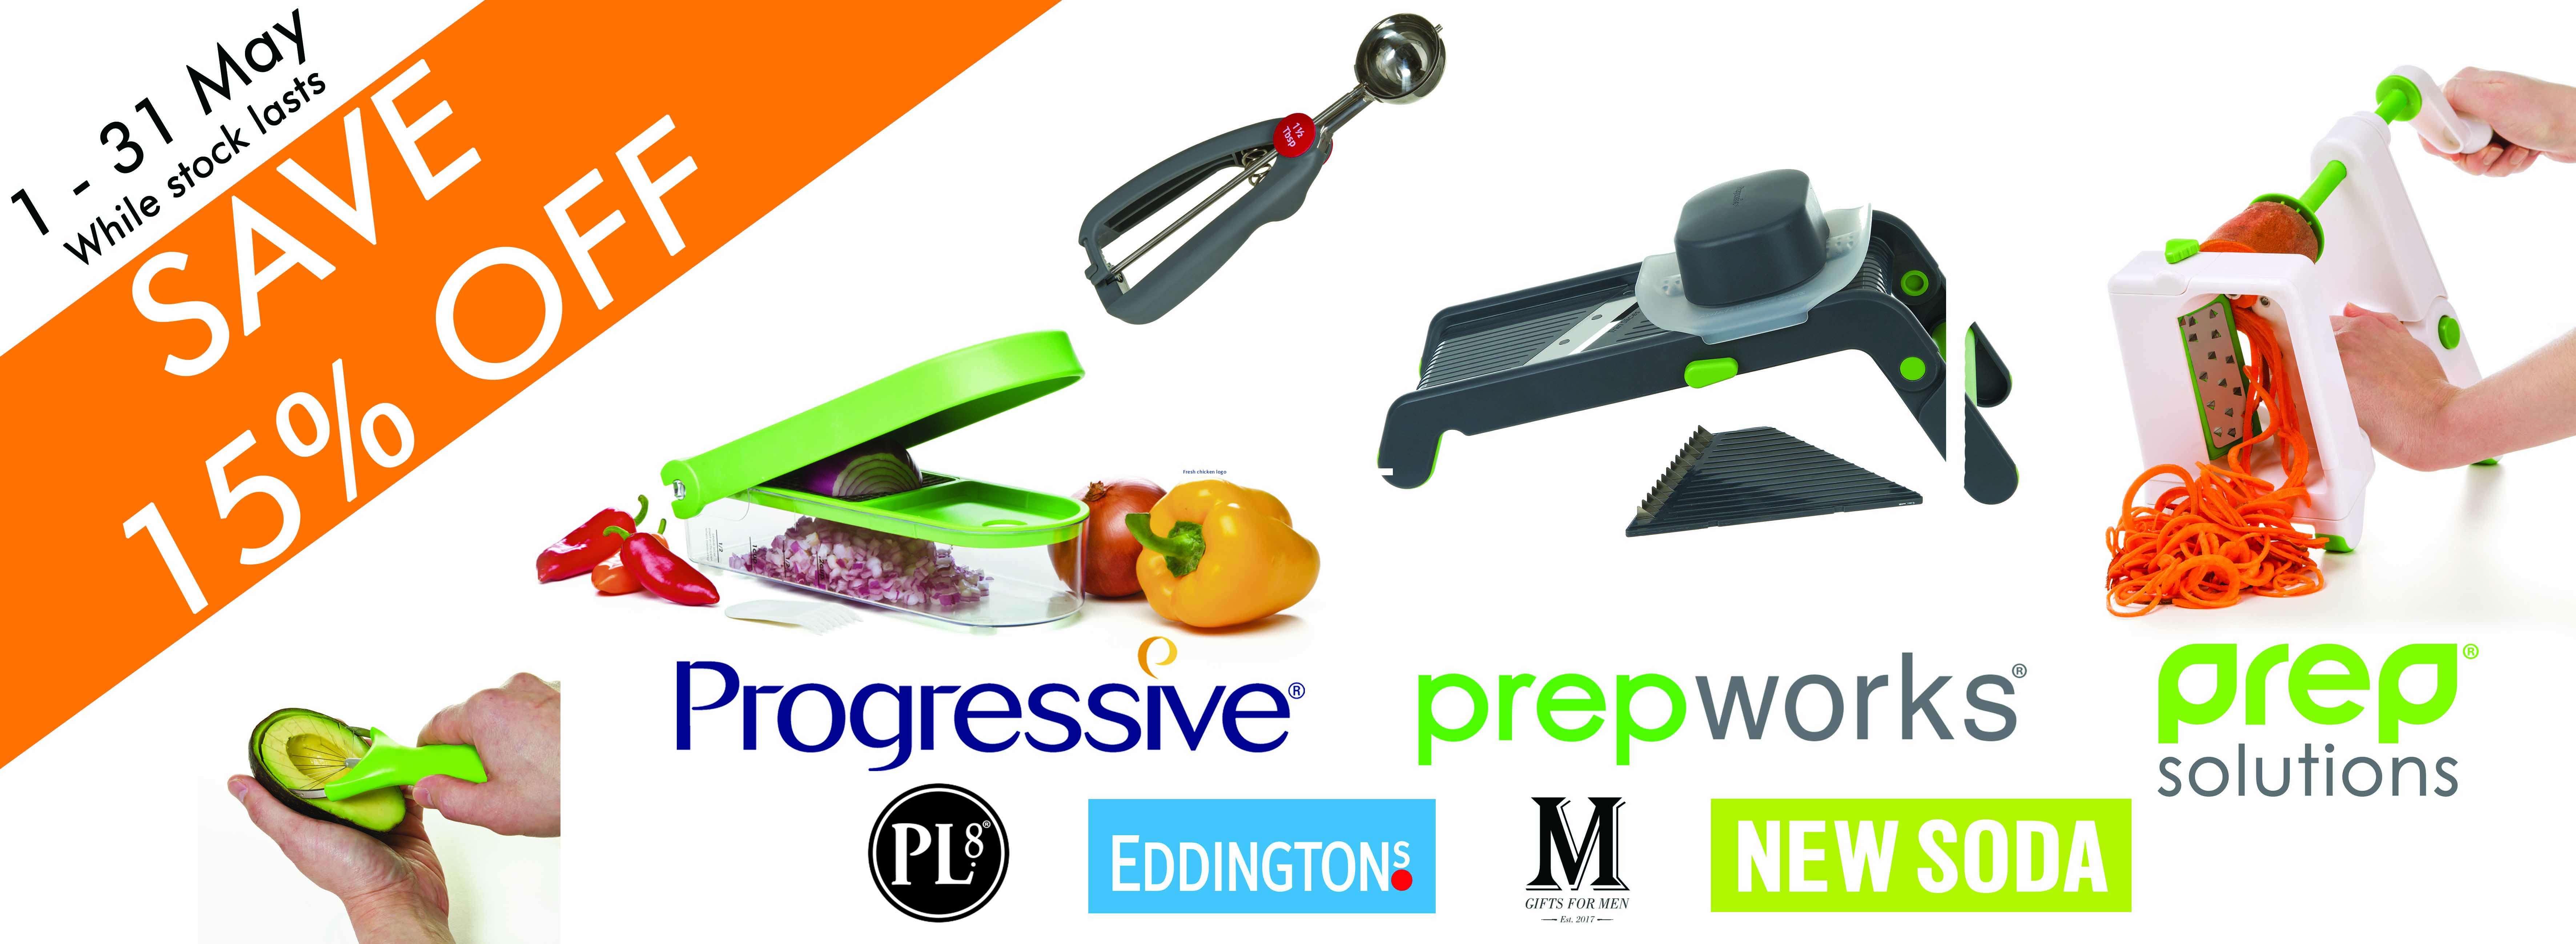 SAVE 15% off on any Progressive item during May 2018